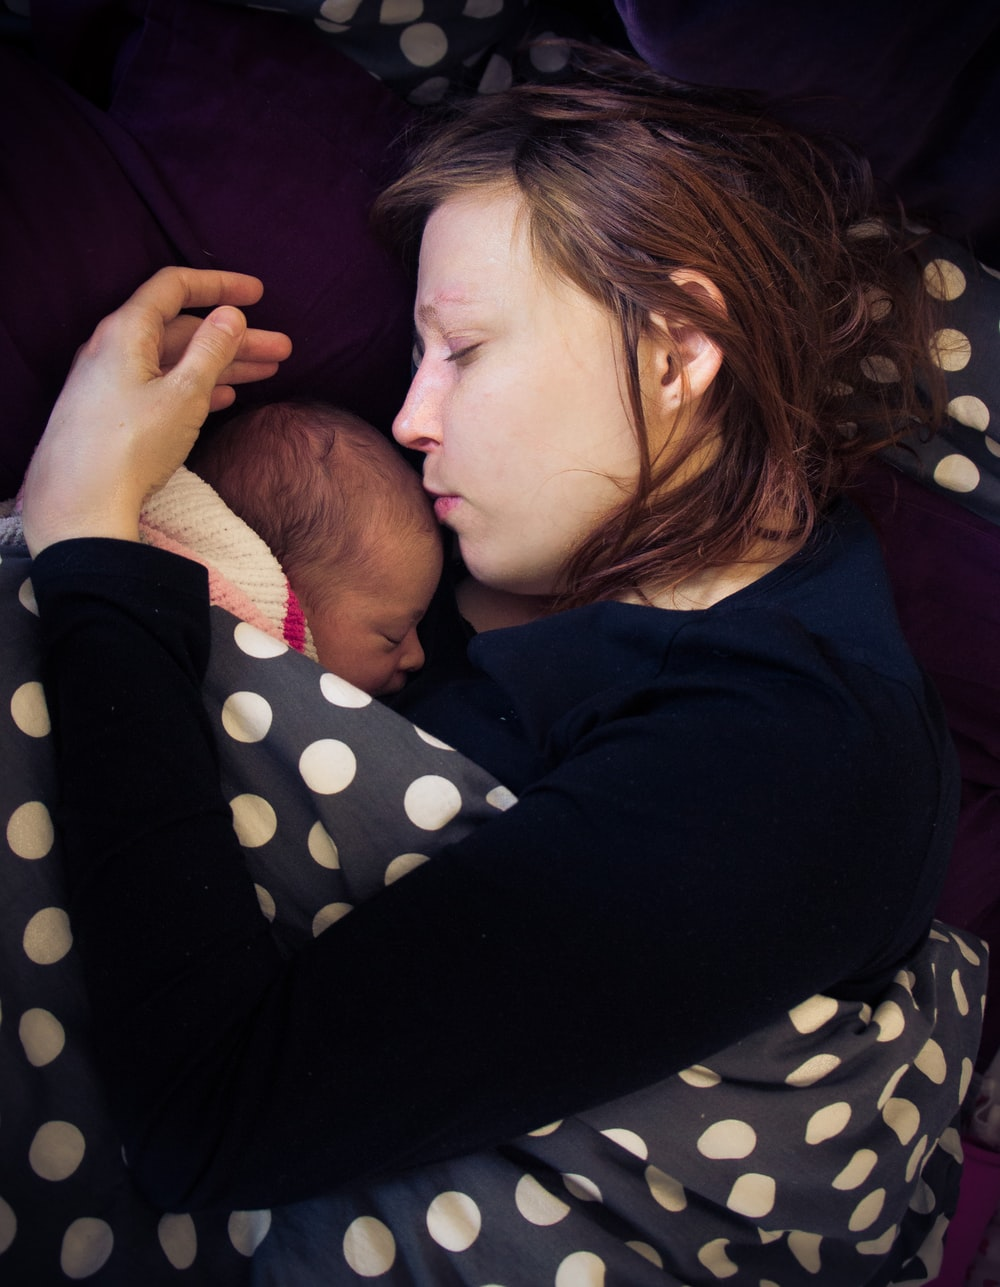 woman kissing on baby's forehead